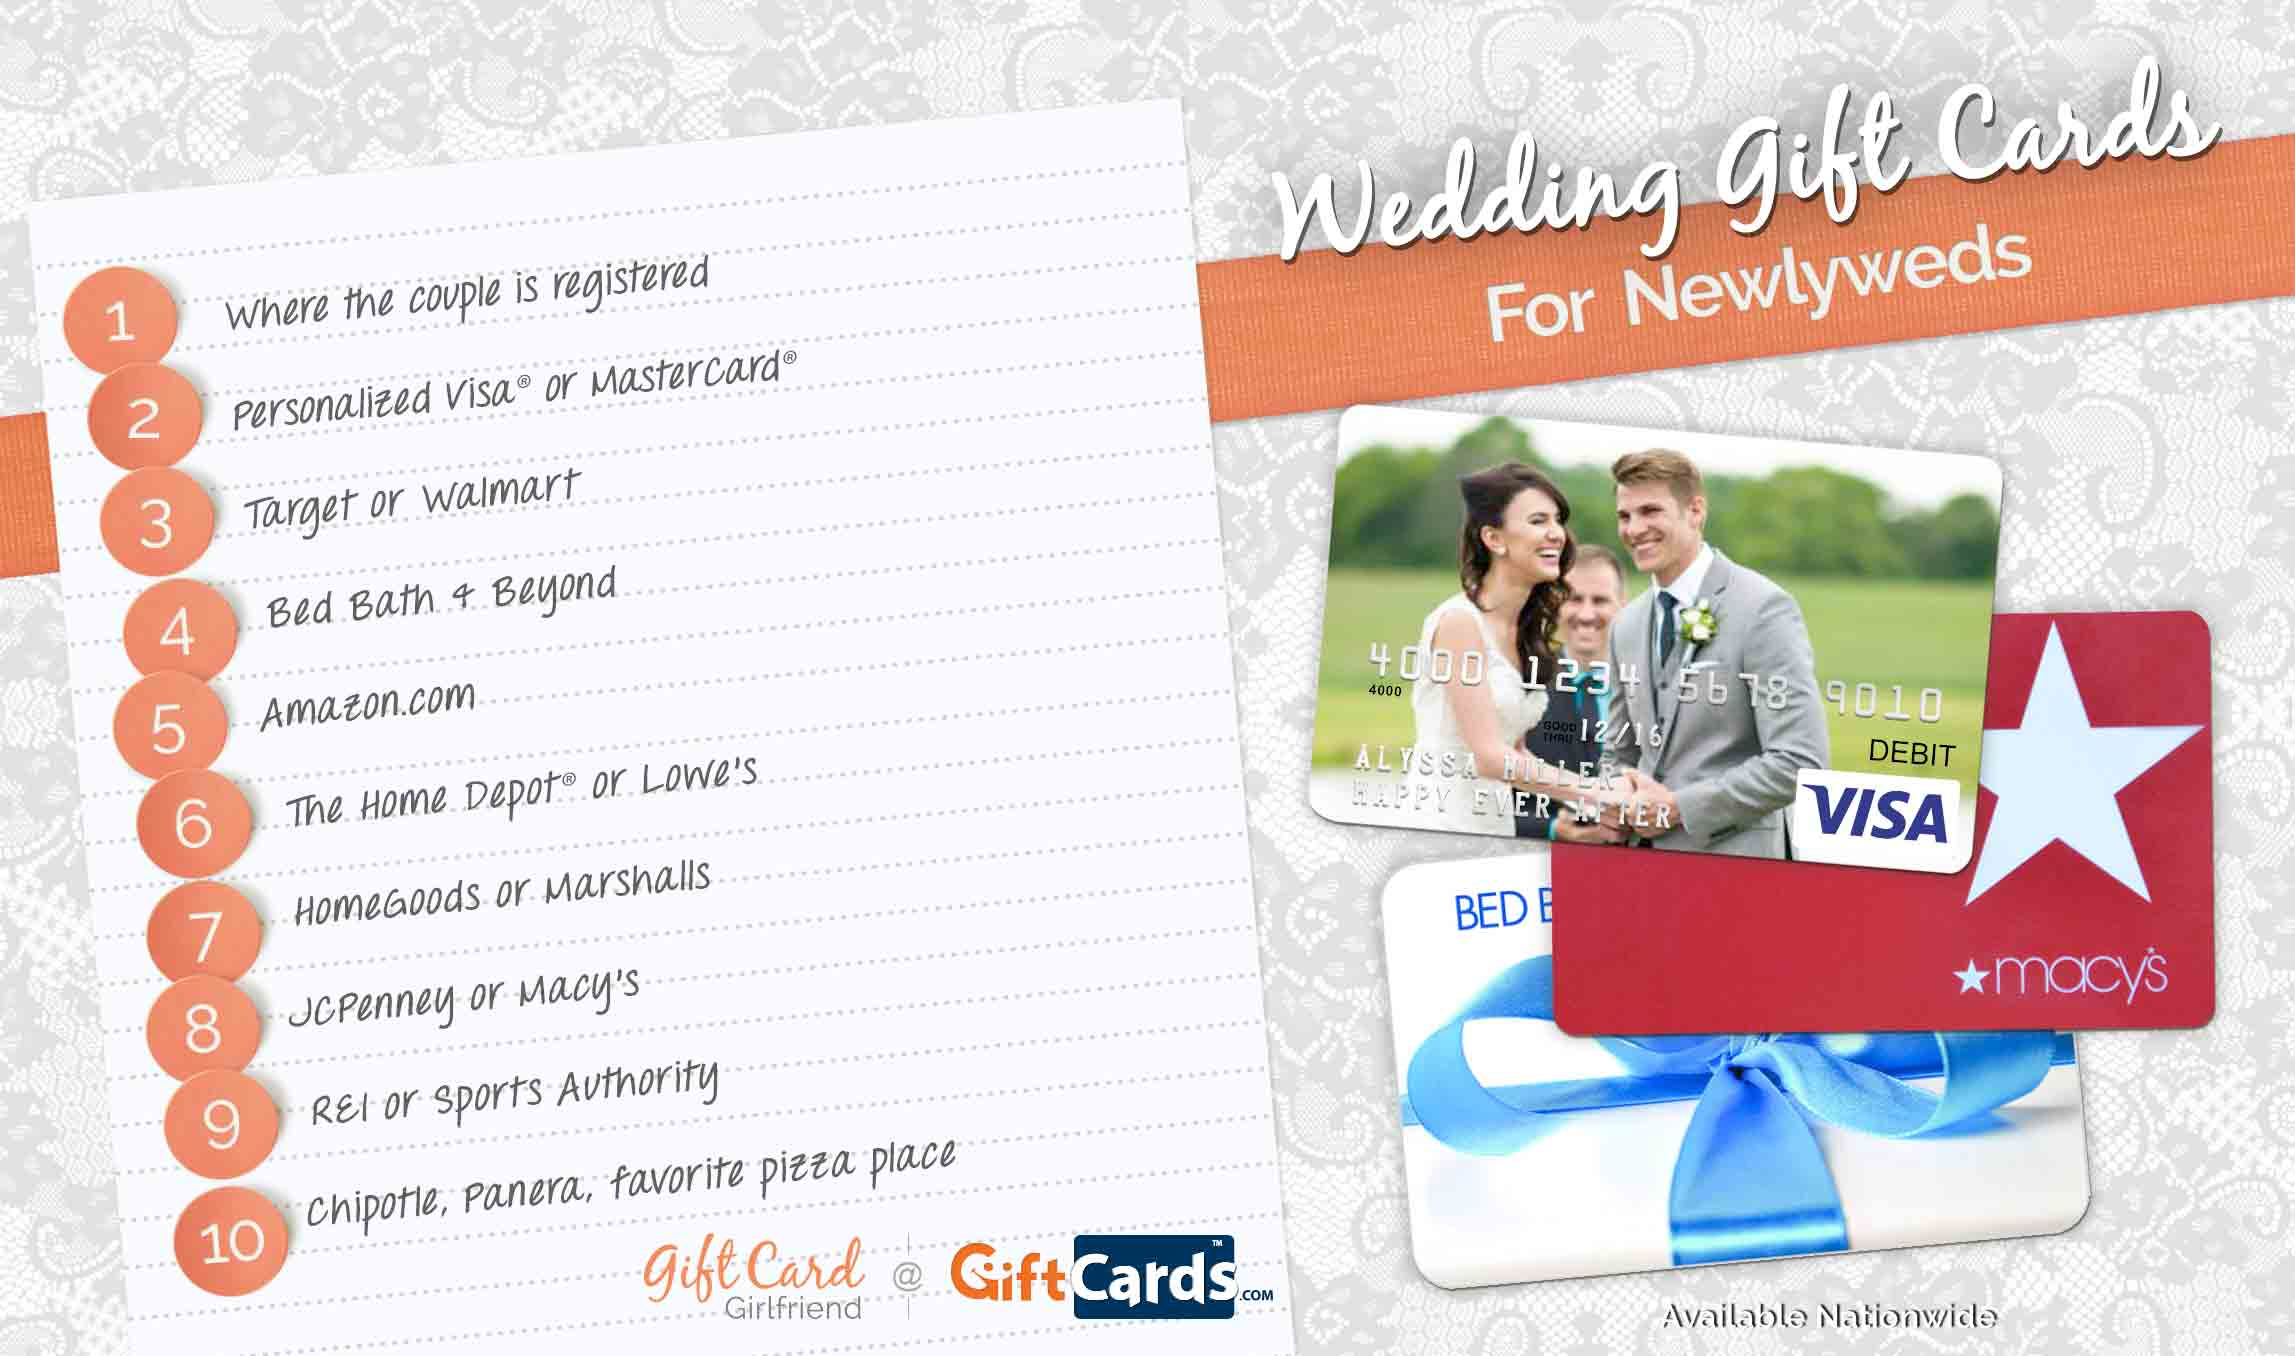 Wedding Gift Vouchers : Wedding Cards Wedding Gift Vouchers top 10 wedding gift cards to buy ...